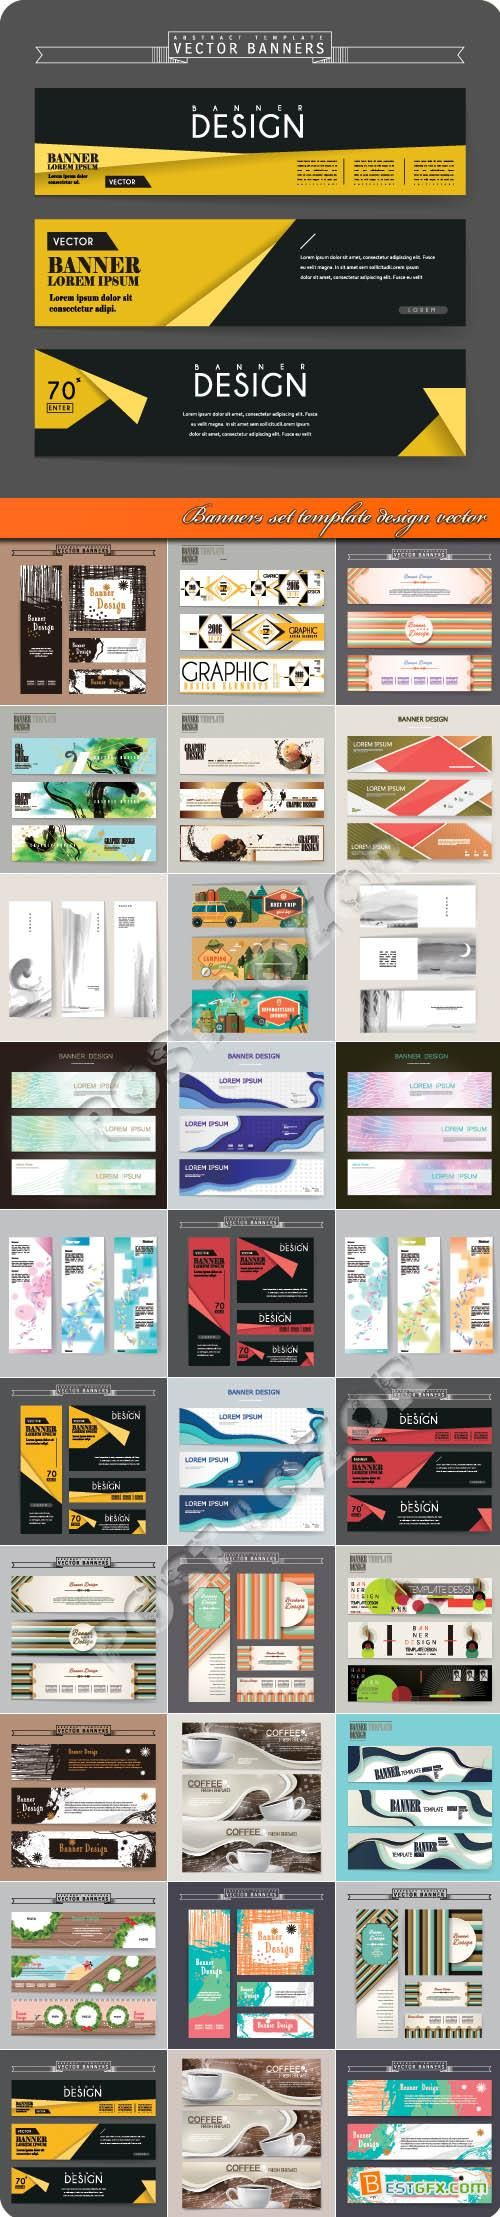 Banner Design Ideas 20 creative vertical banner design ideas Banners Set Template Design Vector